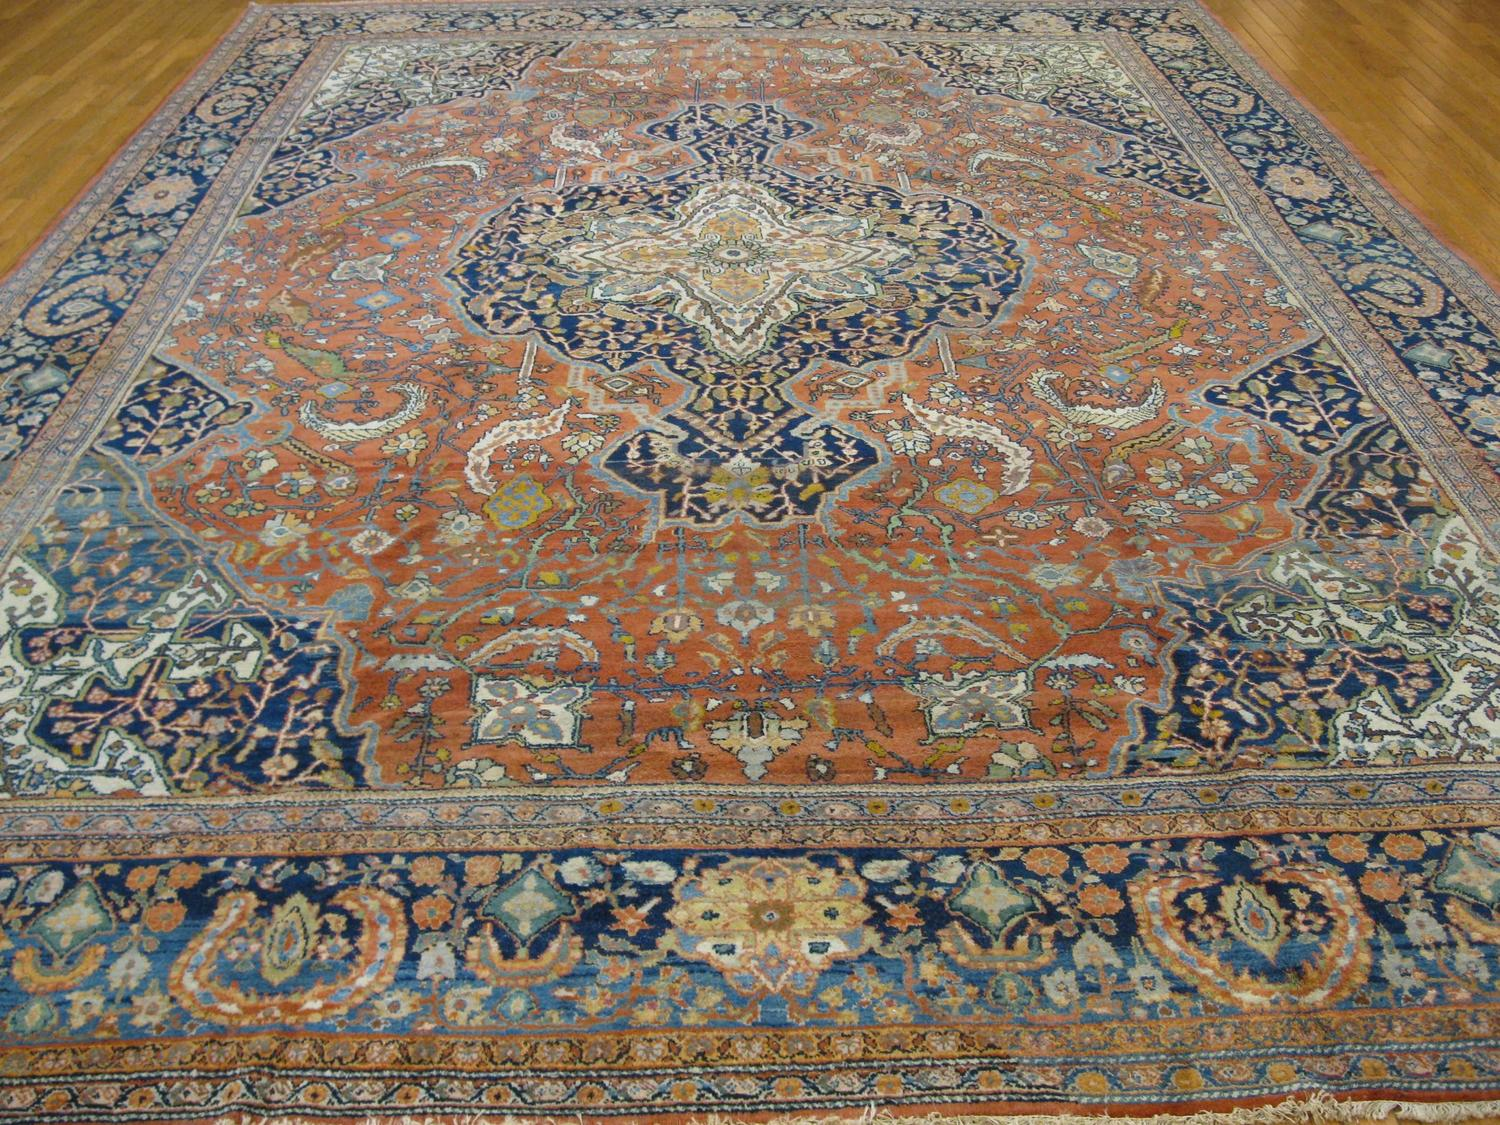 Large Room Size Antique Persian Sarouk Farahan Rug For